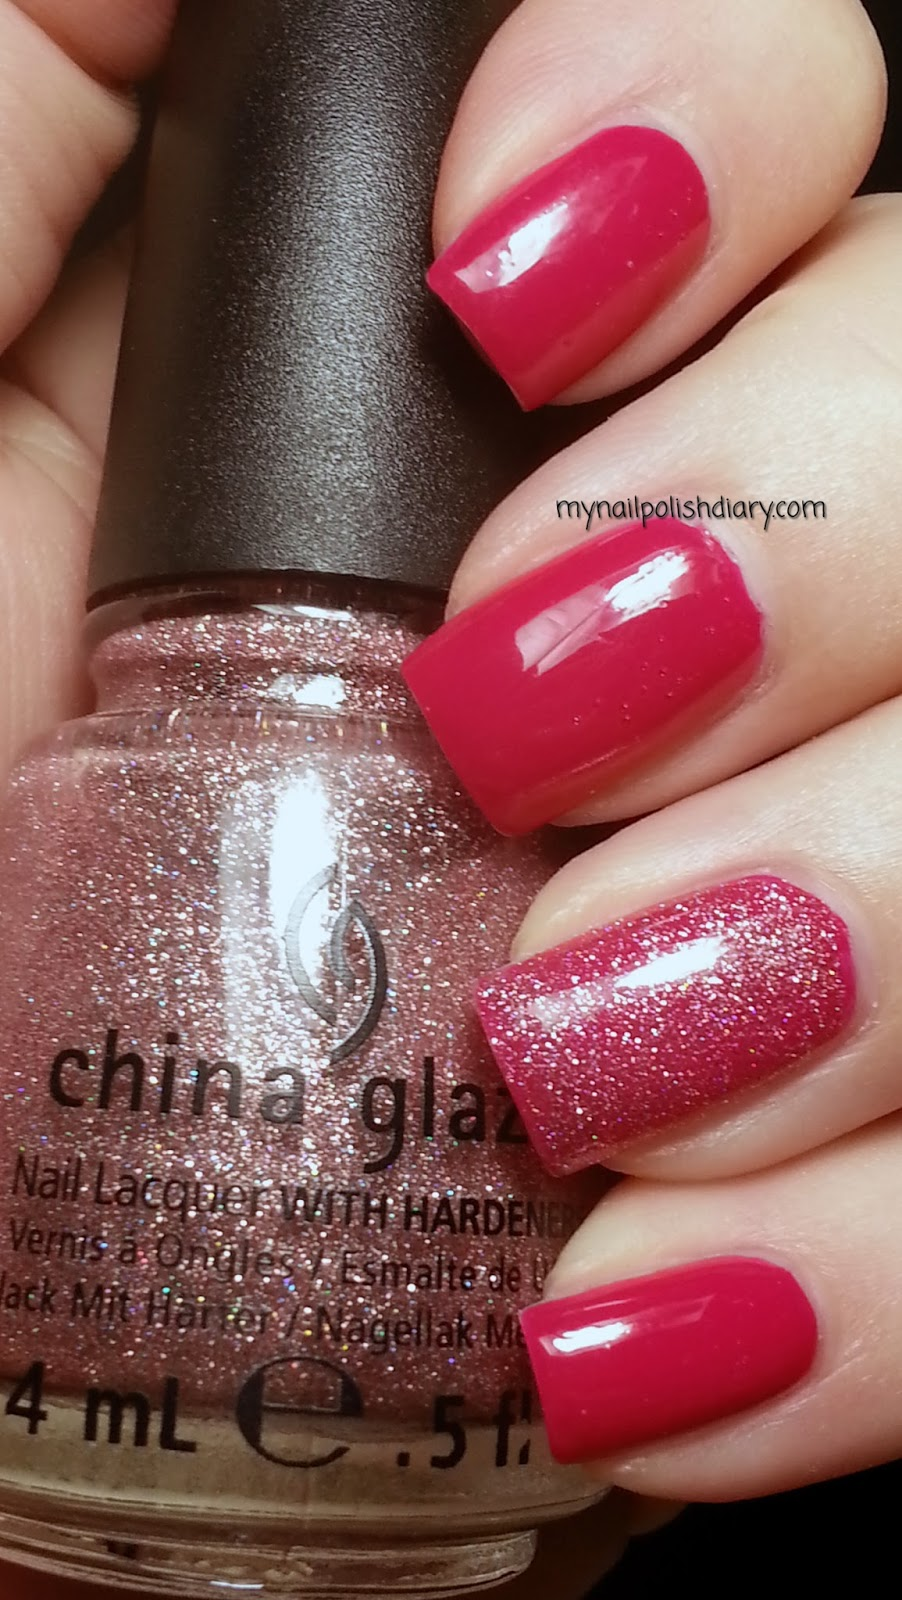 Amazing Opi Nail Polish Koala Berry Image - Nail Polish Ideas ...